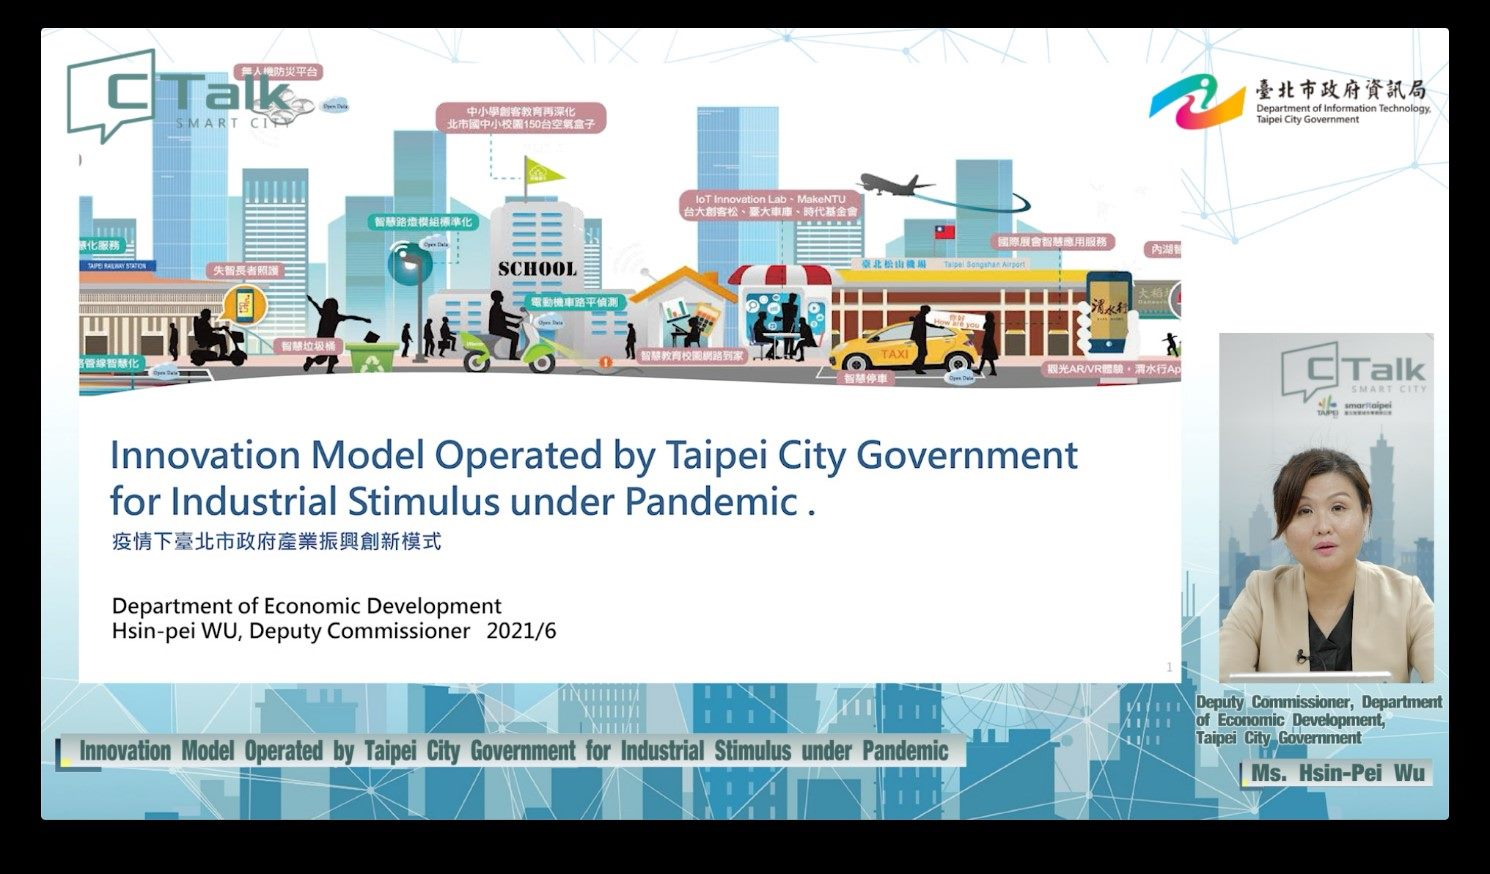 WU Hsin-Pei, Deputy Commissioner of Department of Economic Development of Taipei City, delivered a keynote speech